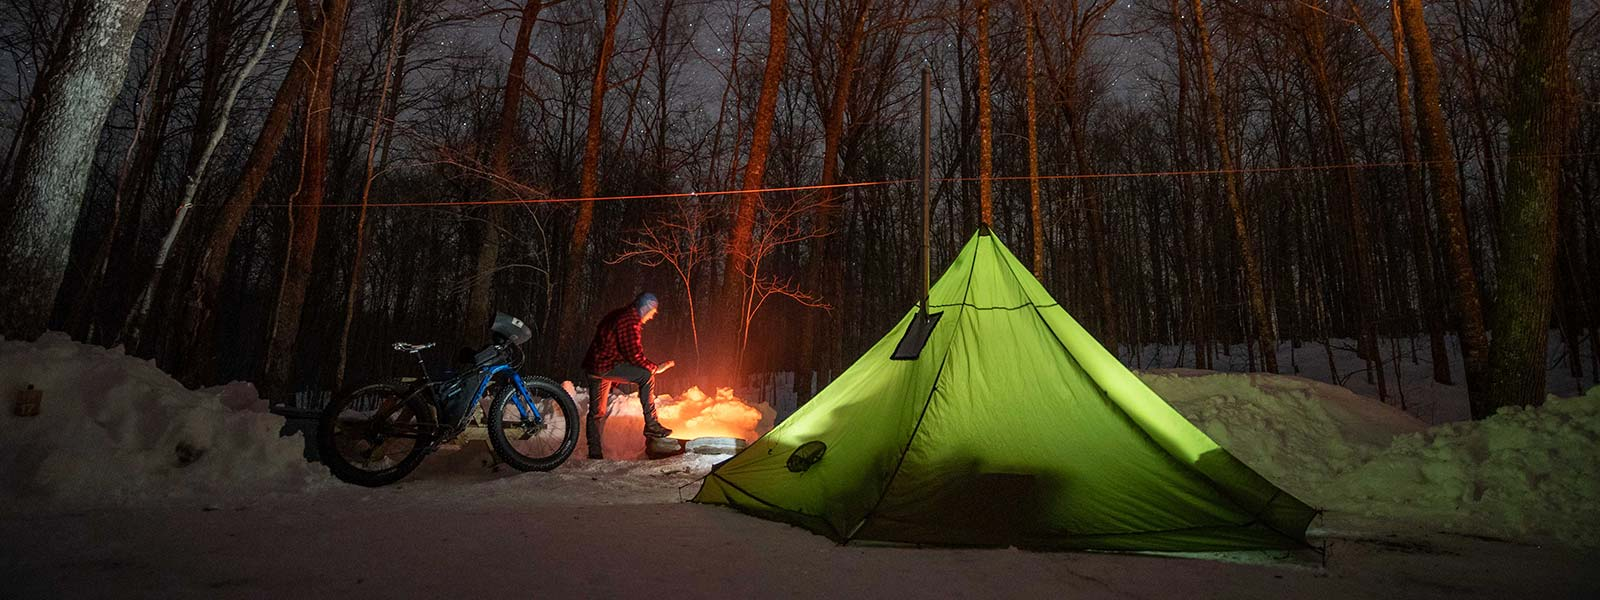 Full Spectrum Cycling #49 - Winter ROAM Camping Report and Complete Streets With Dave Schlabowske